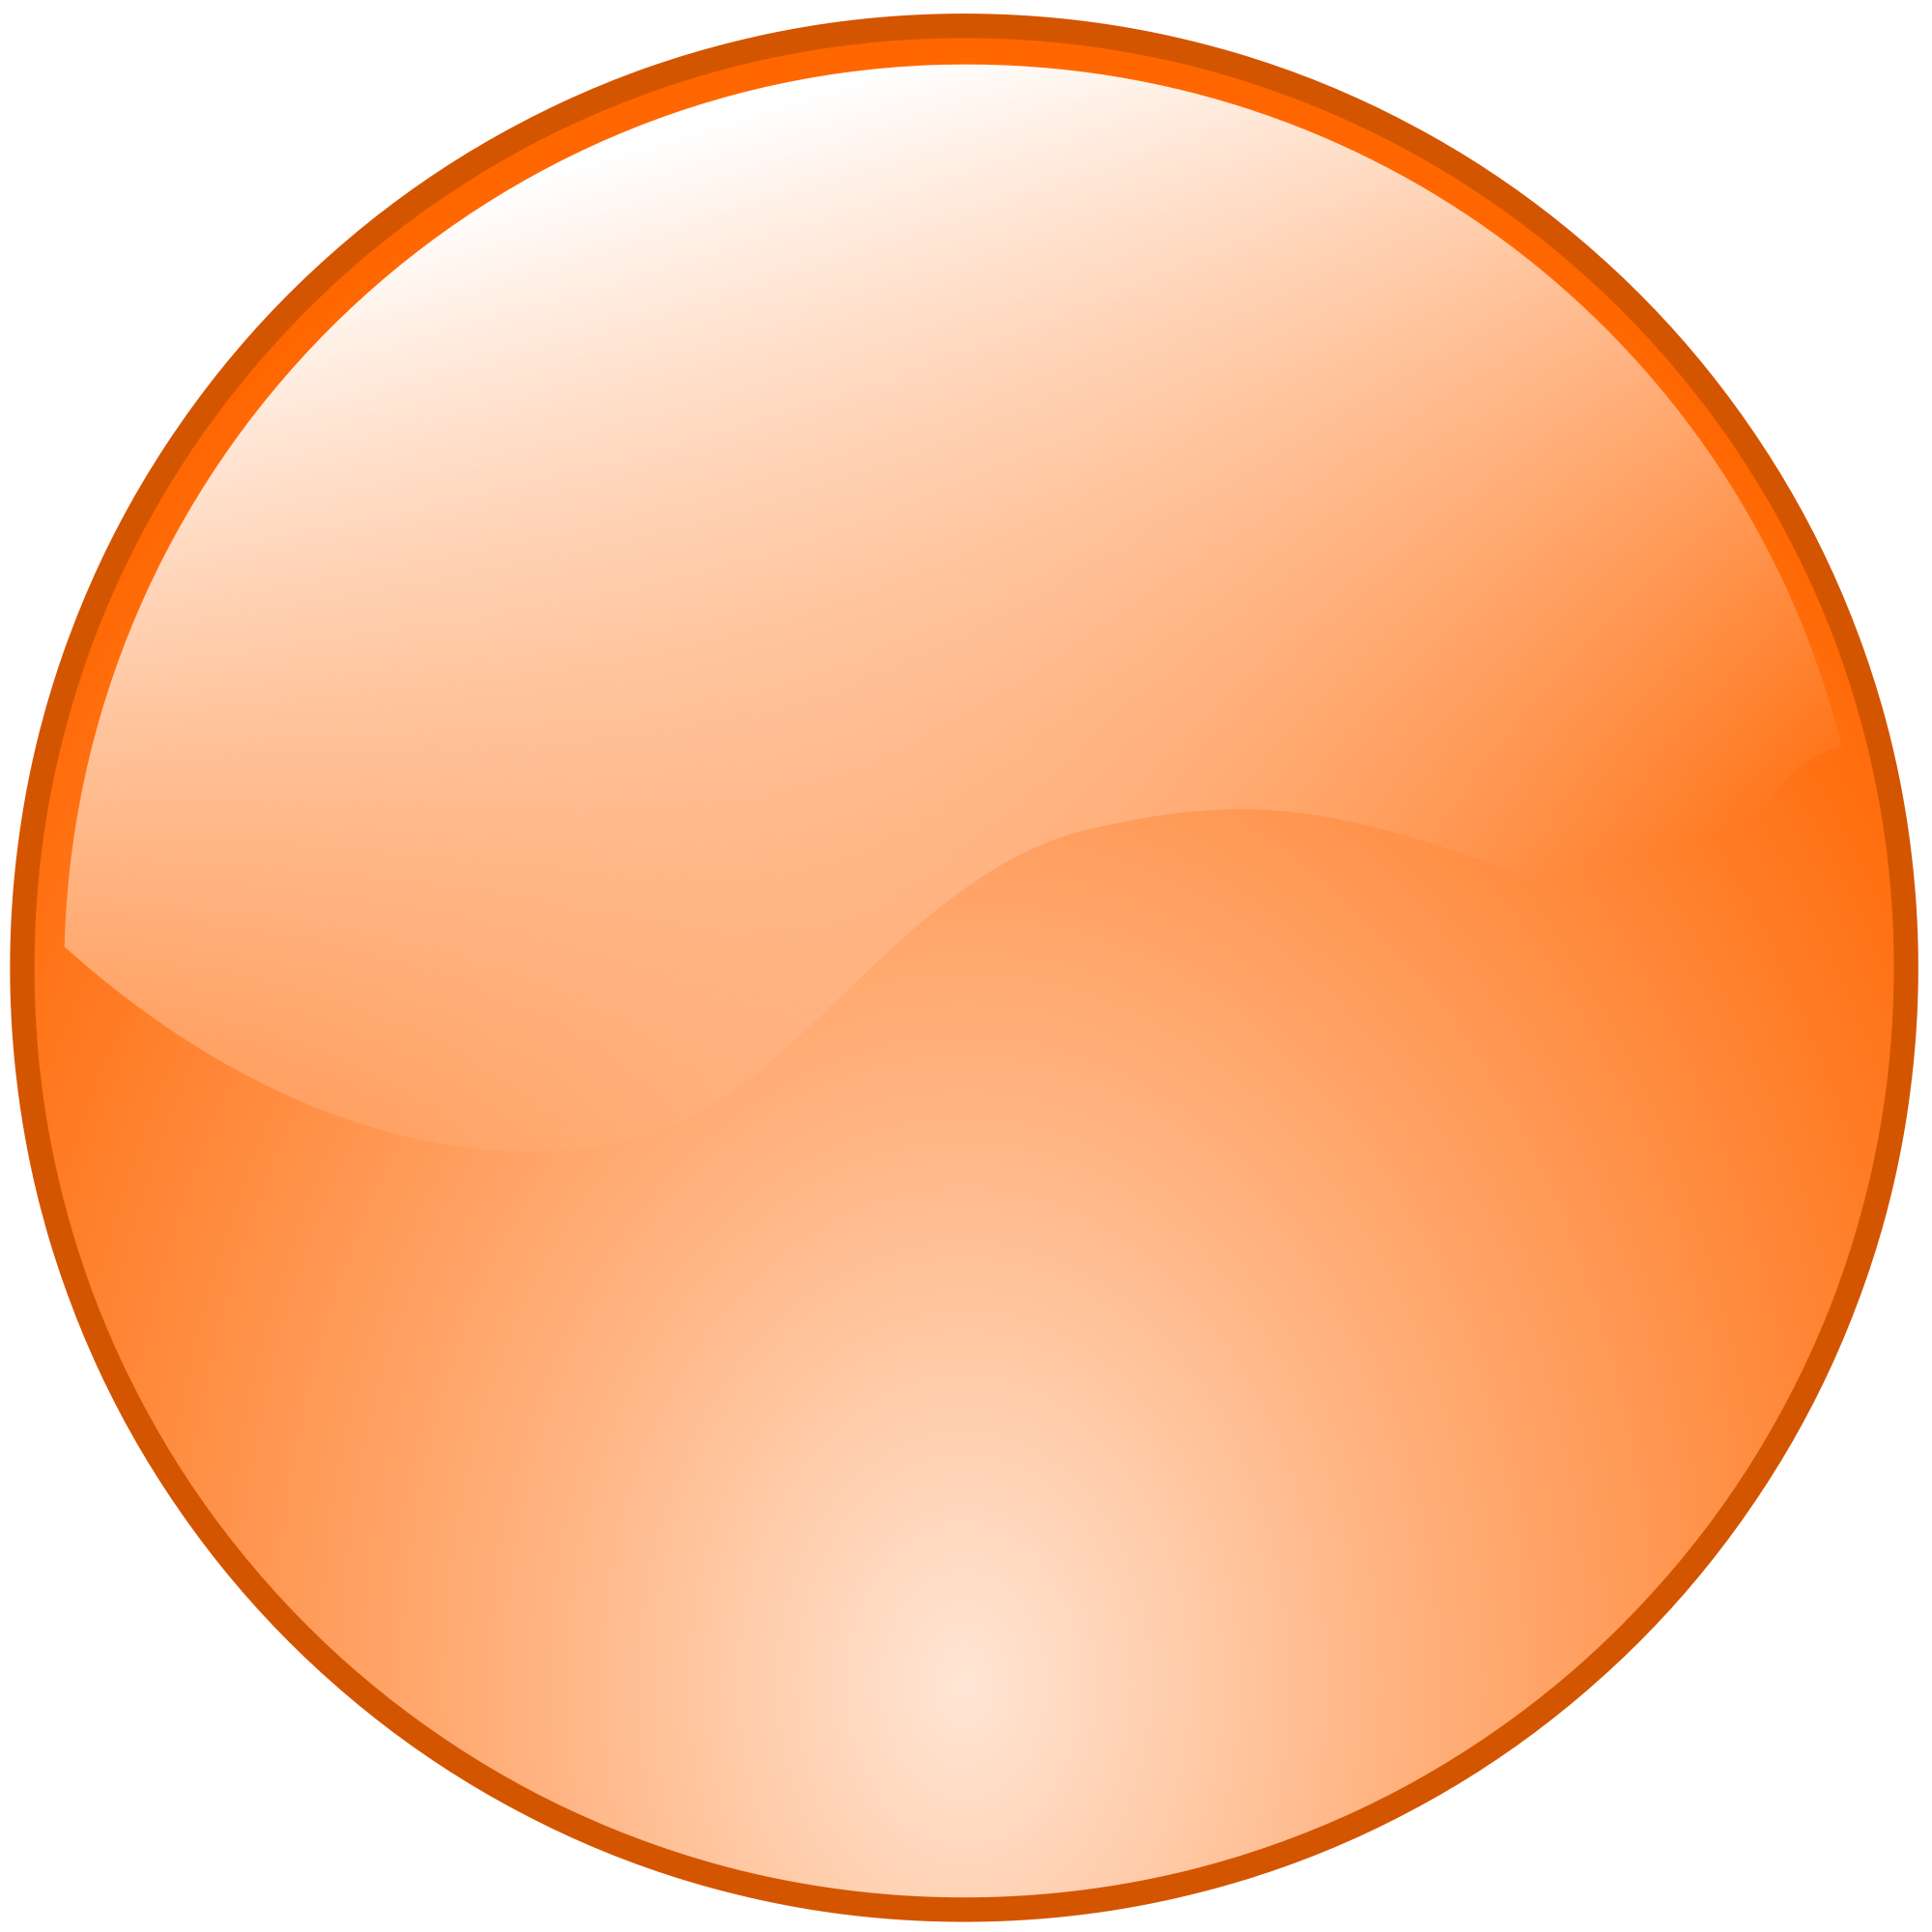 Orange Circle Transparent & PNG Clipart Free Download - YWD